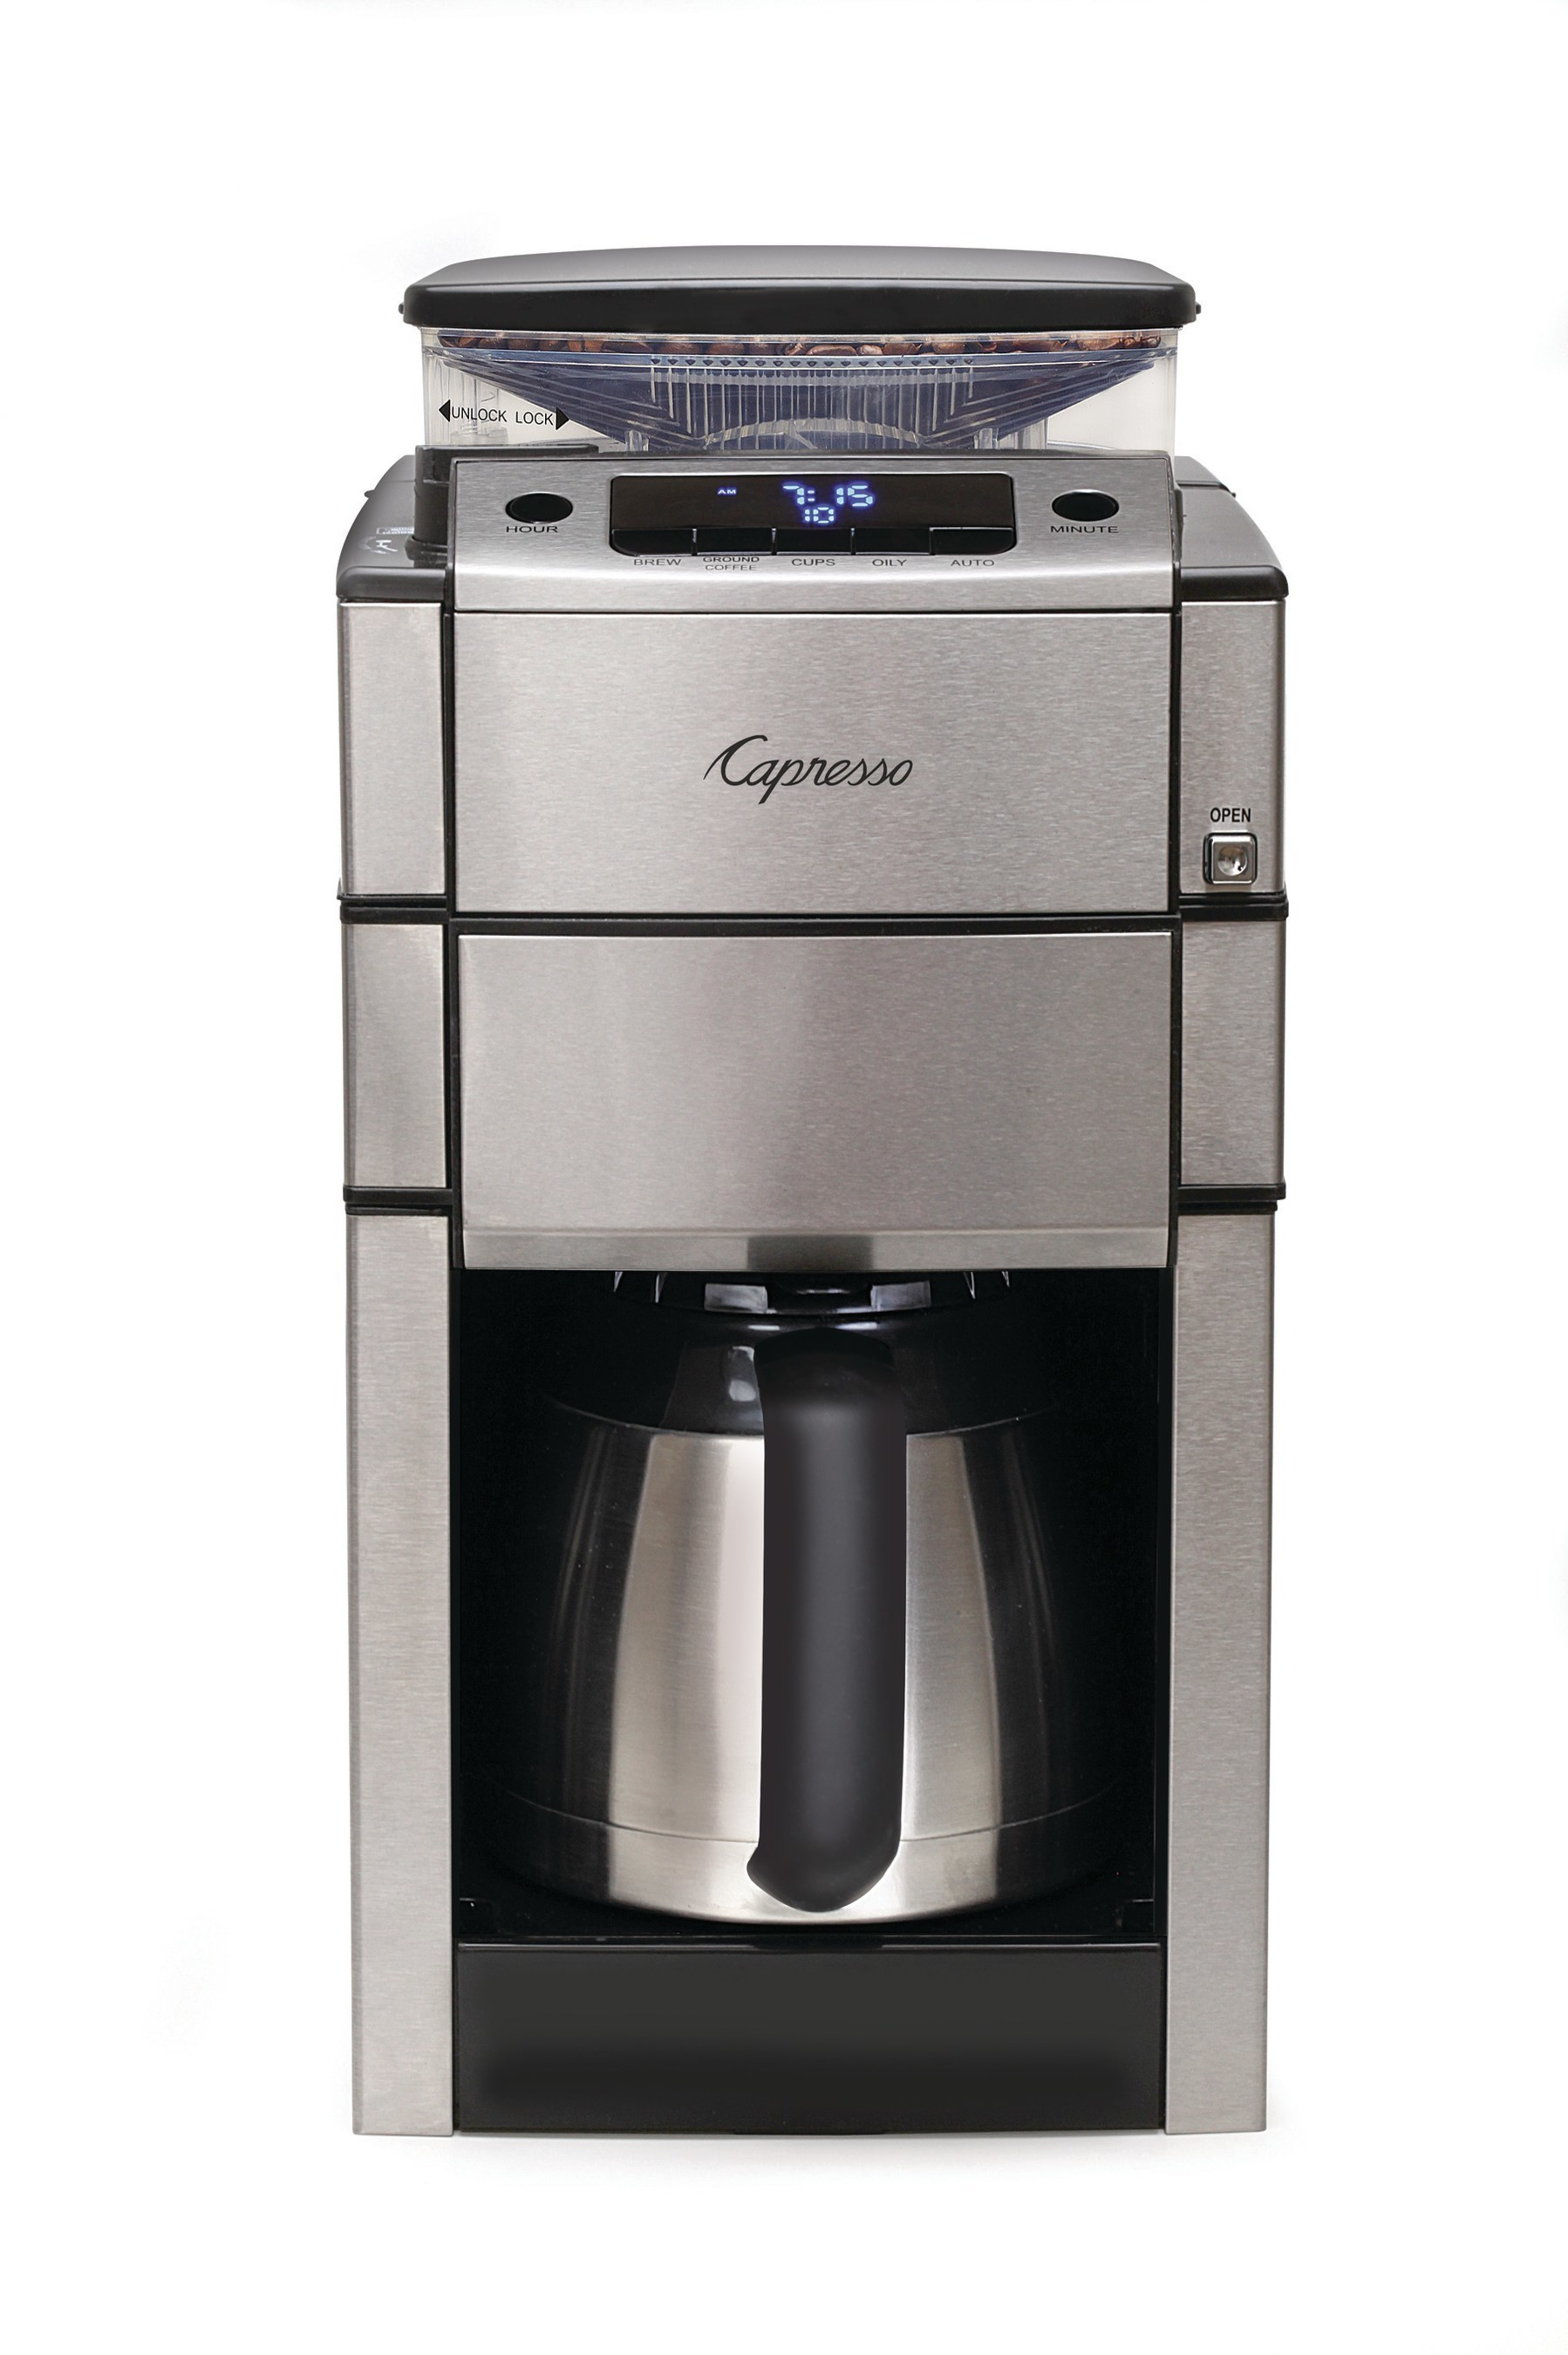 Capresso Brings You Coffee Perfection with New CoffeeTEAM PRO Plus